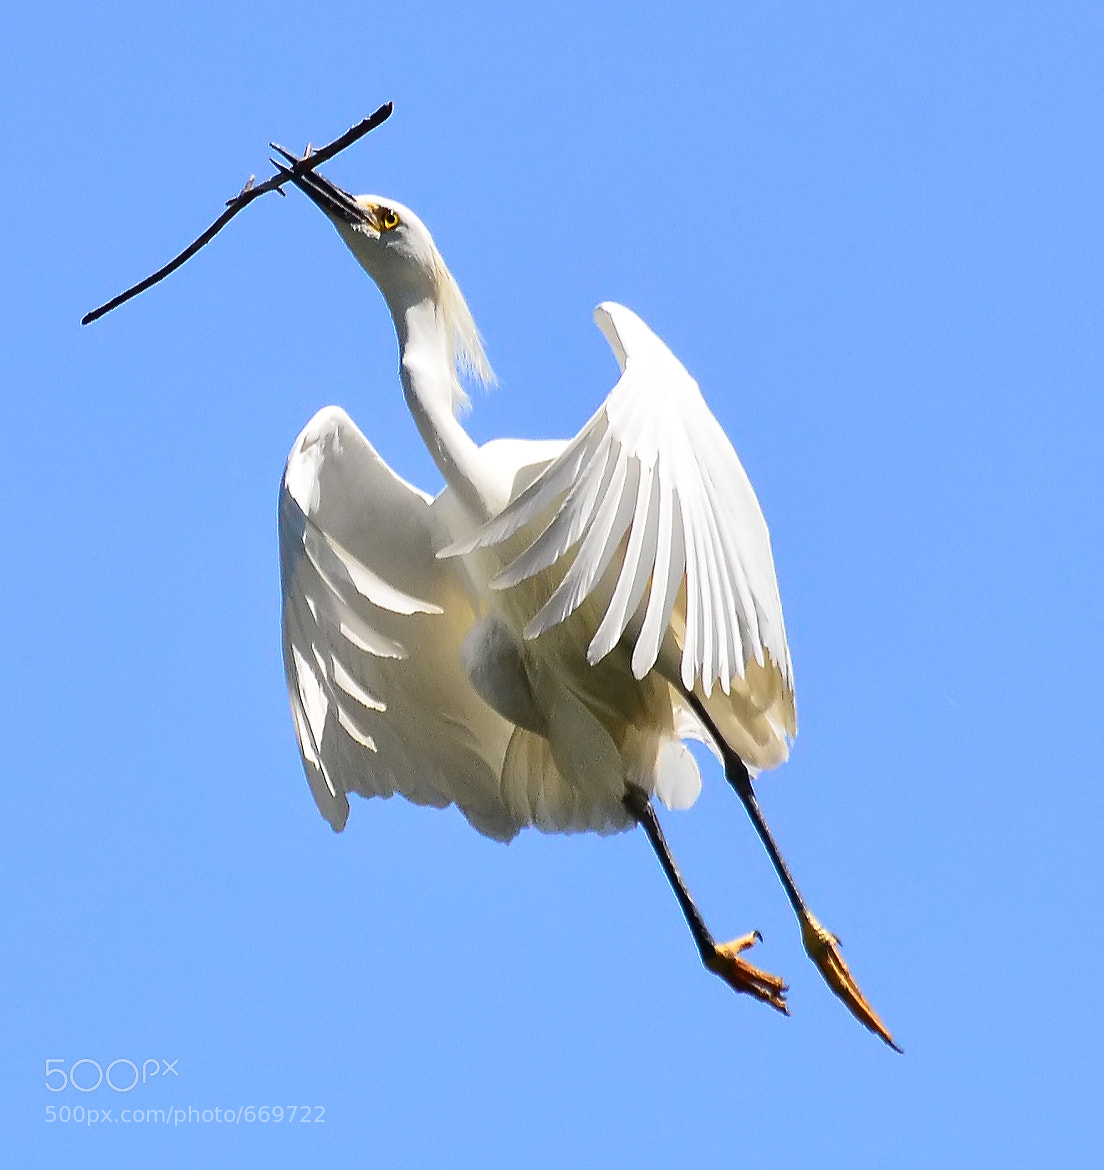 Photograph Snowy Egret in Flight by Jeff Clow on 500px